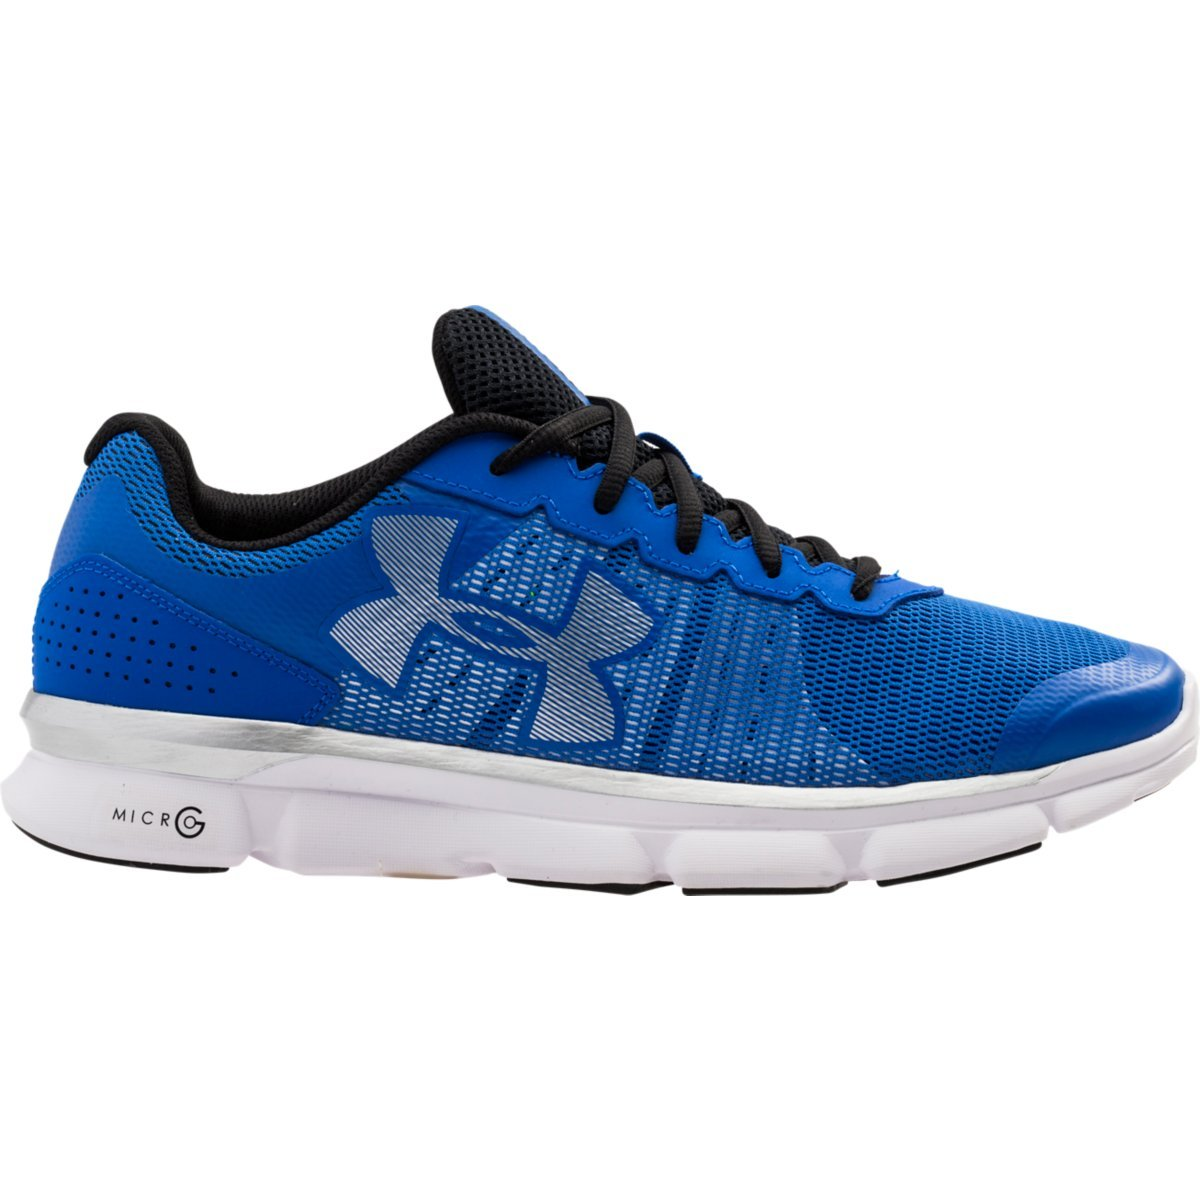 Tenis Under Armour Running -  Caballero